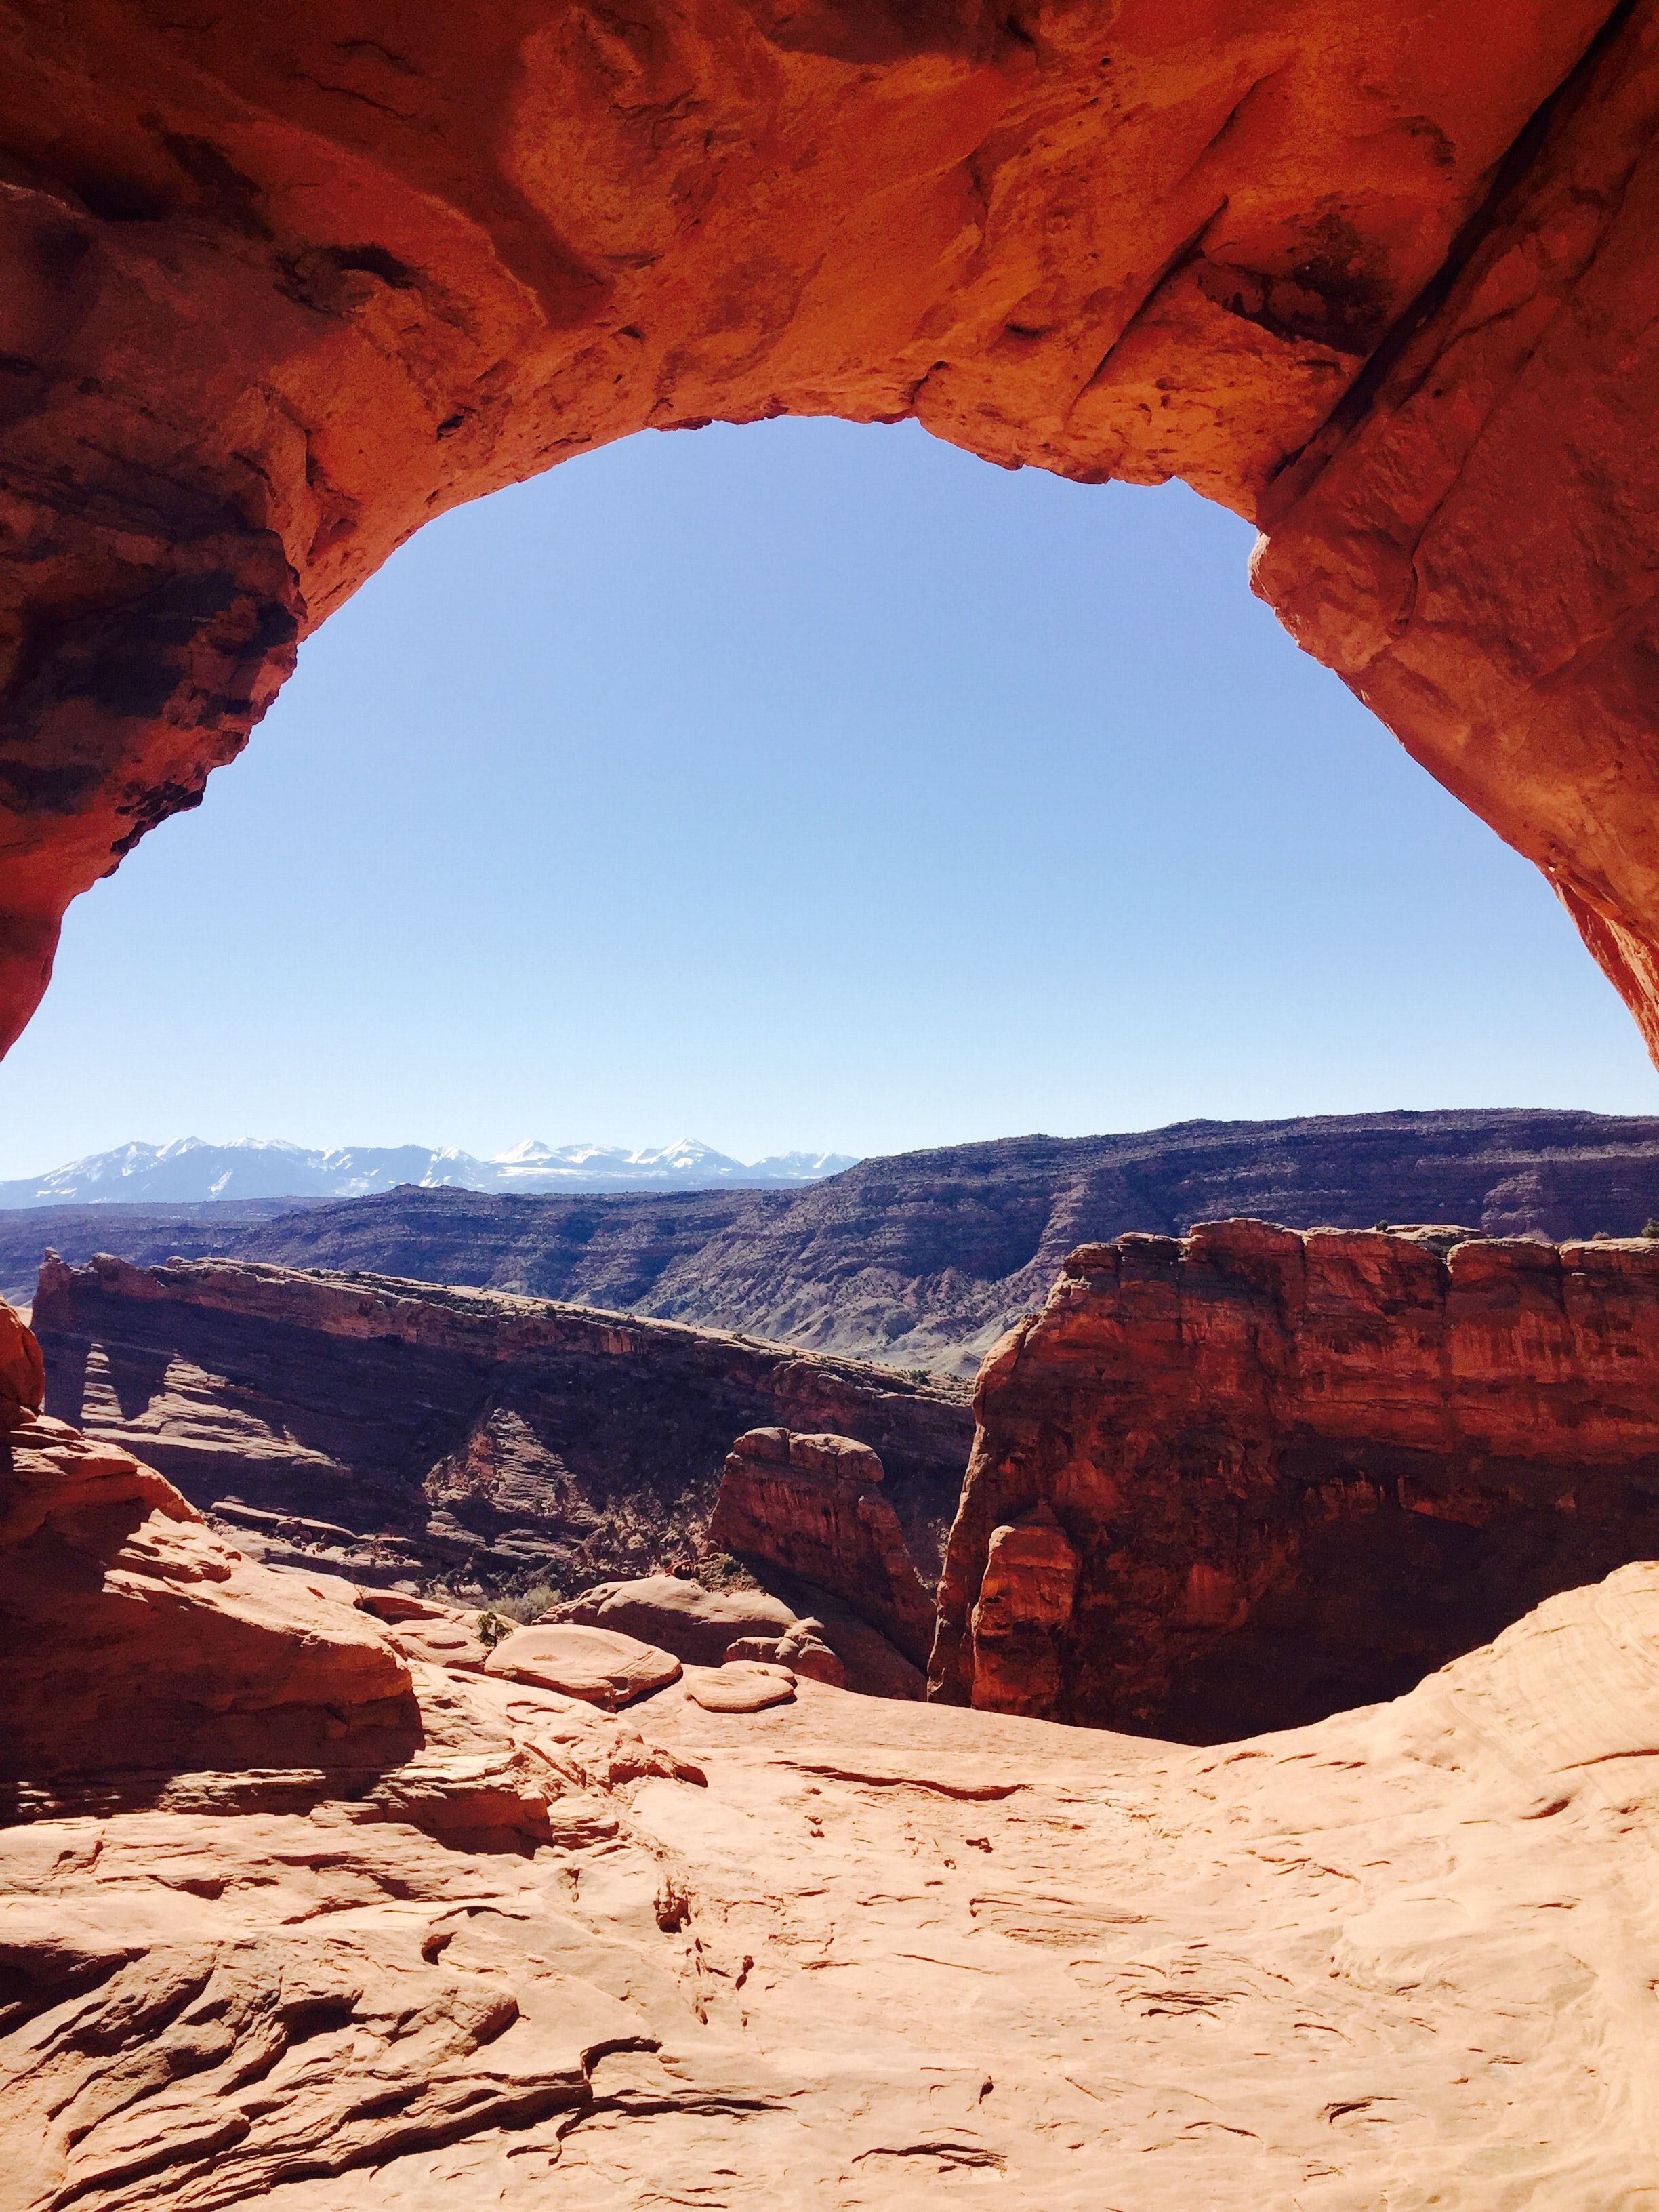 A view on a sunlit canyon from below a red rocky arch